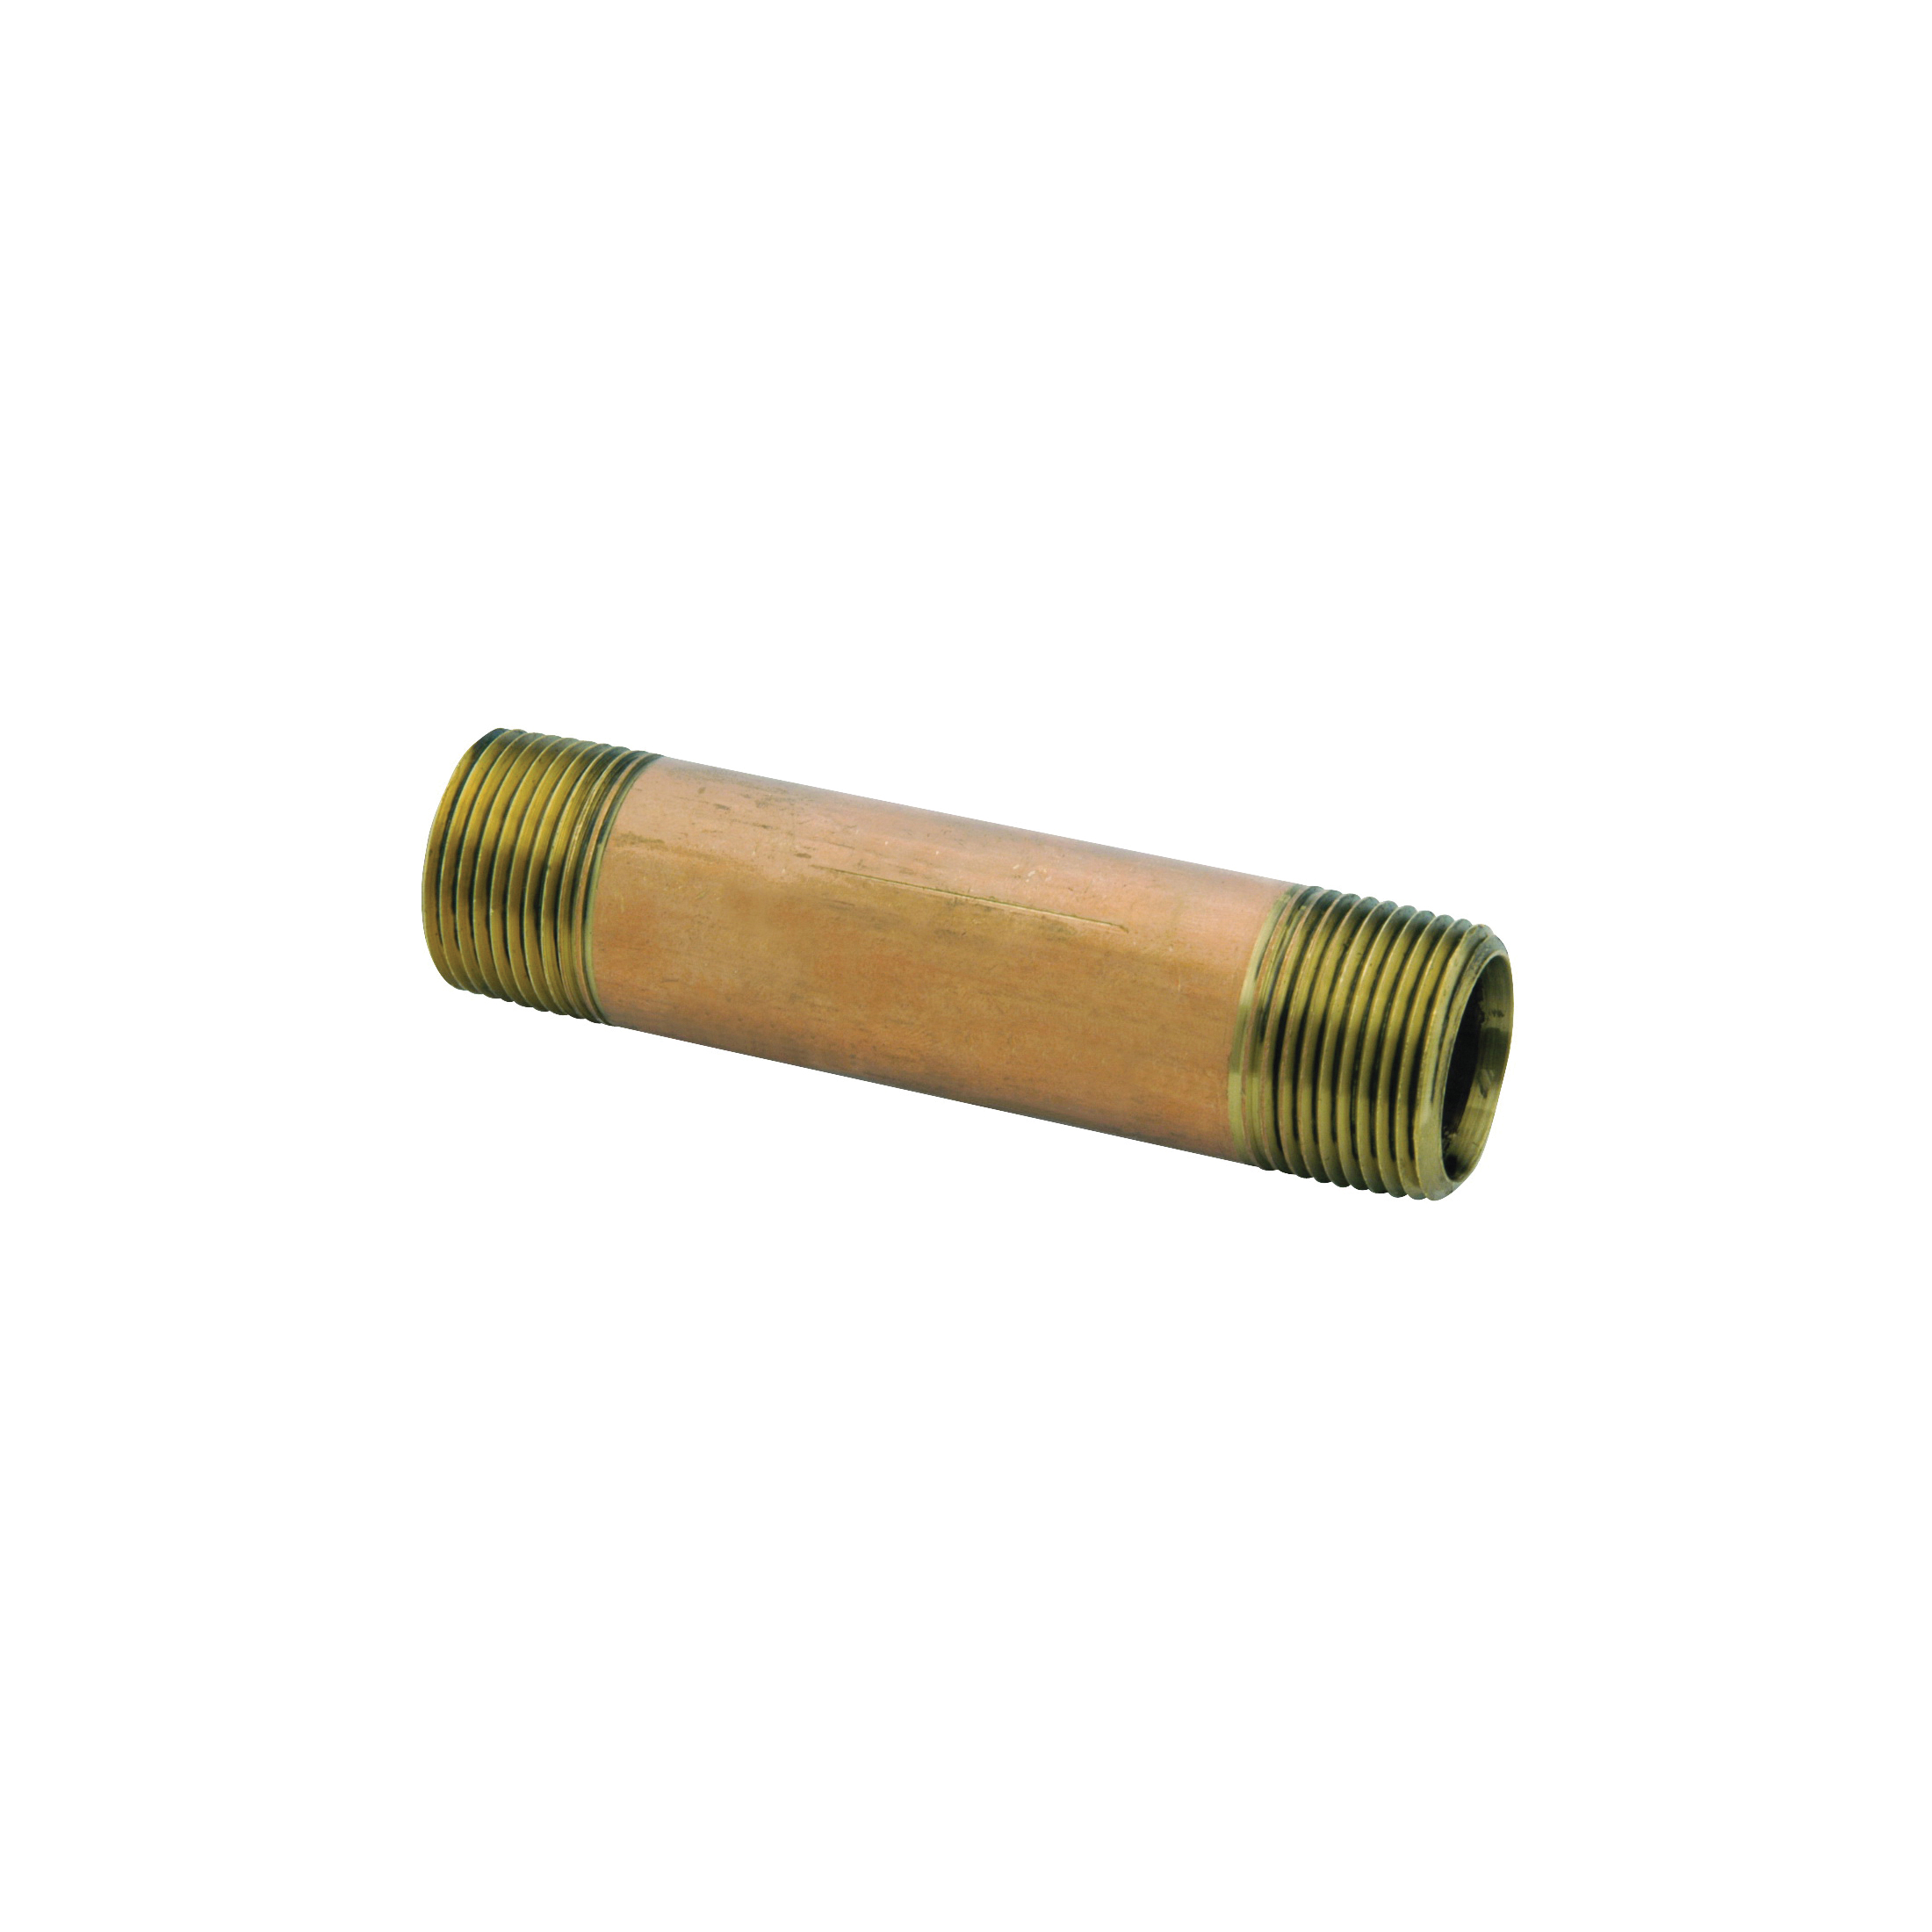 Picture of Anderson Metals 38300-0440 Pipe Nipple, 1/4 in, NPT, Brass, SCH 40 Schedule, 870 psi Pressure, 4 in L